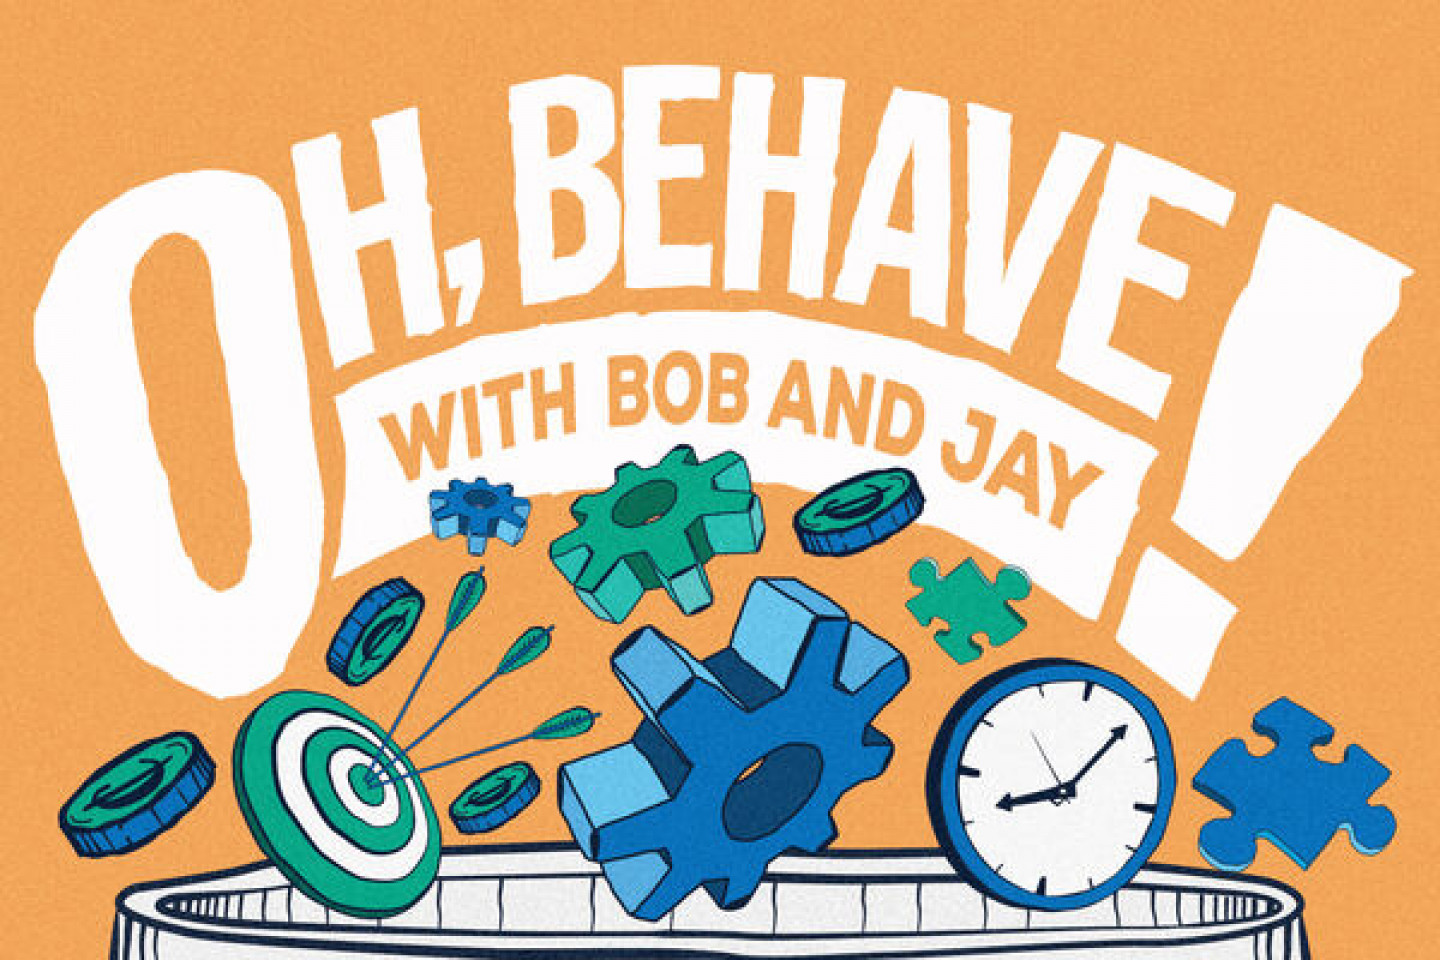 Oh, Behave! with Bob and Jay